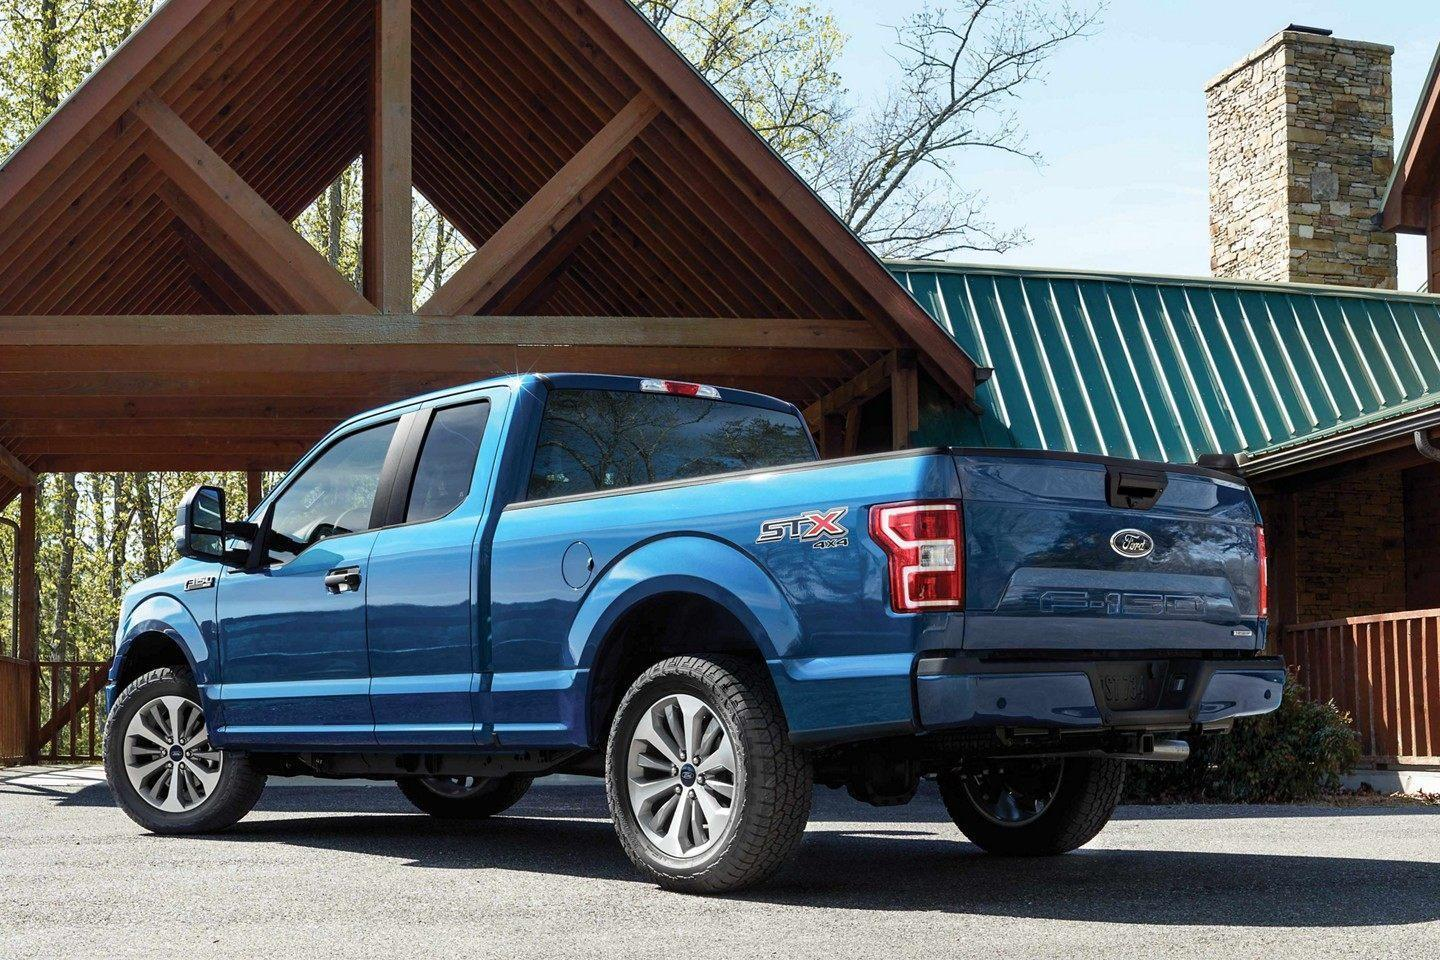 2019 Ford F-150 XLT SuperCrew Truck in Blue at Cabot Ford Lincoln in St. John's, Newfoundland and Labrador (NL)